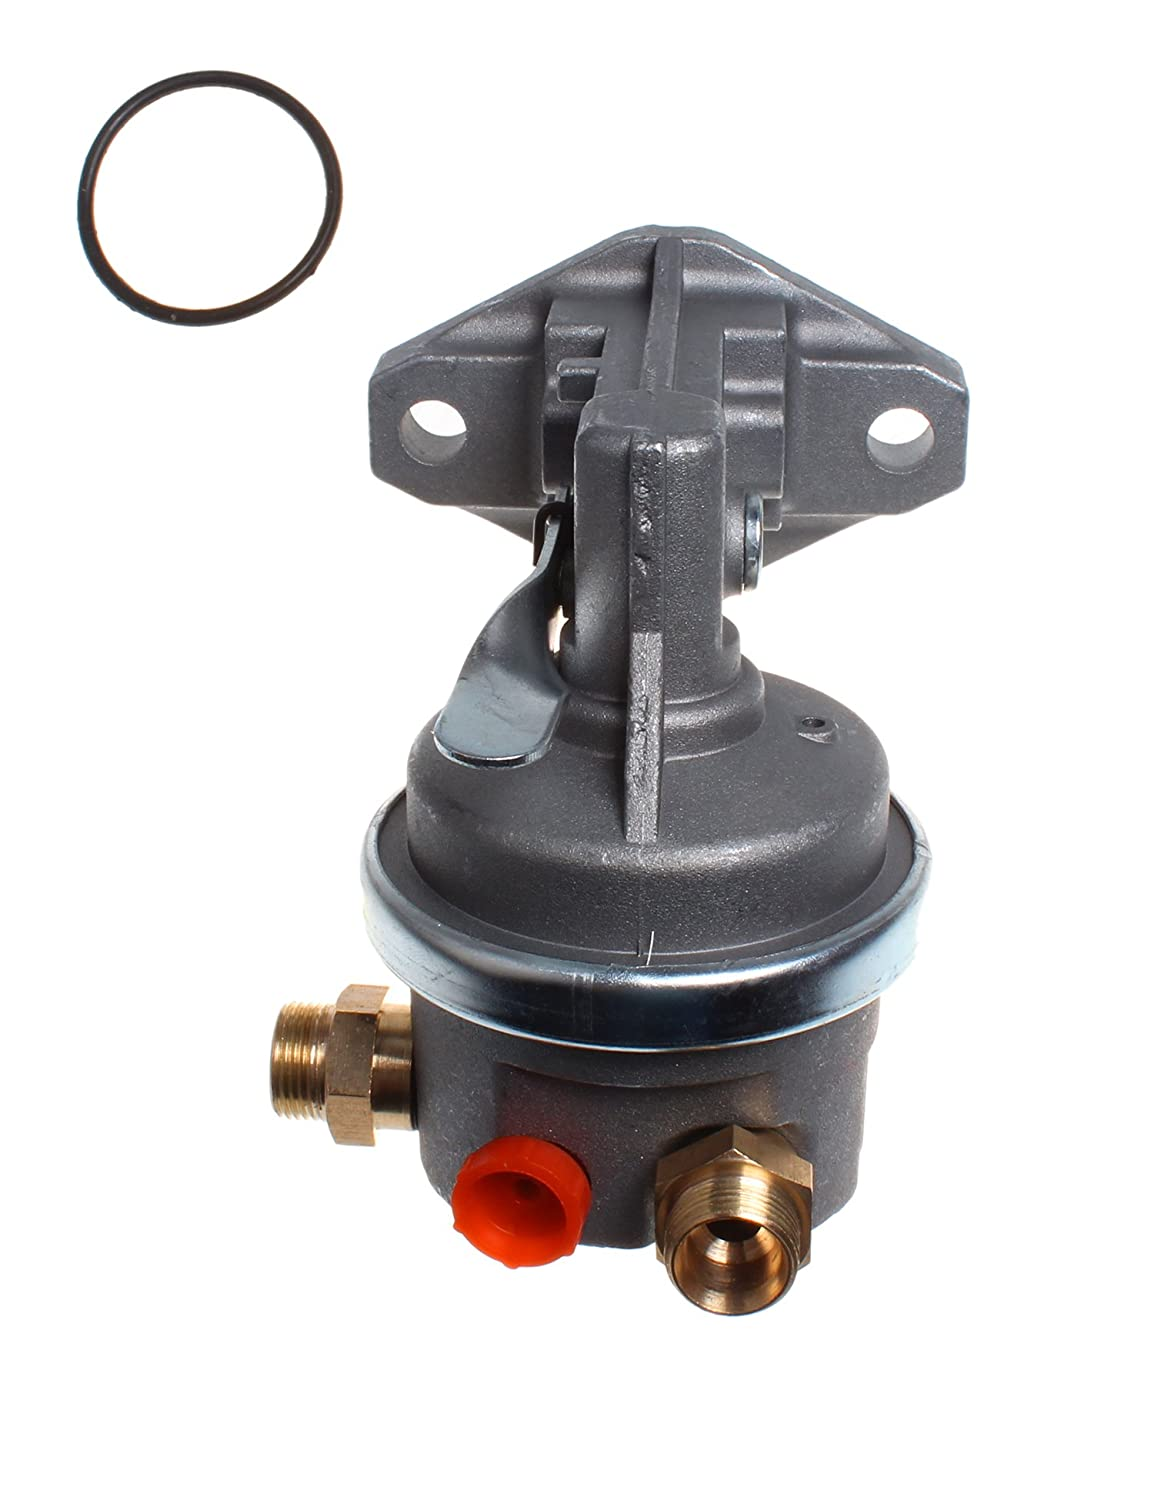 Amazon.com: Fuel Pump RE66153 for John Deere 110 120 310E 410E 450G 455G  550G 555G 6403 6603 7505 450J 550J 650J: Automotive